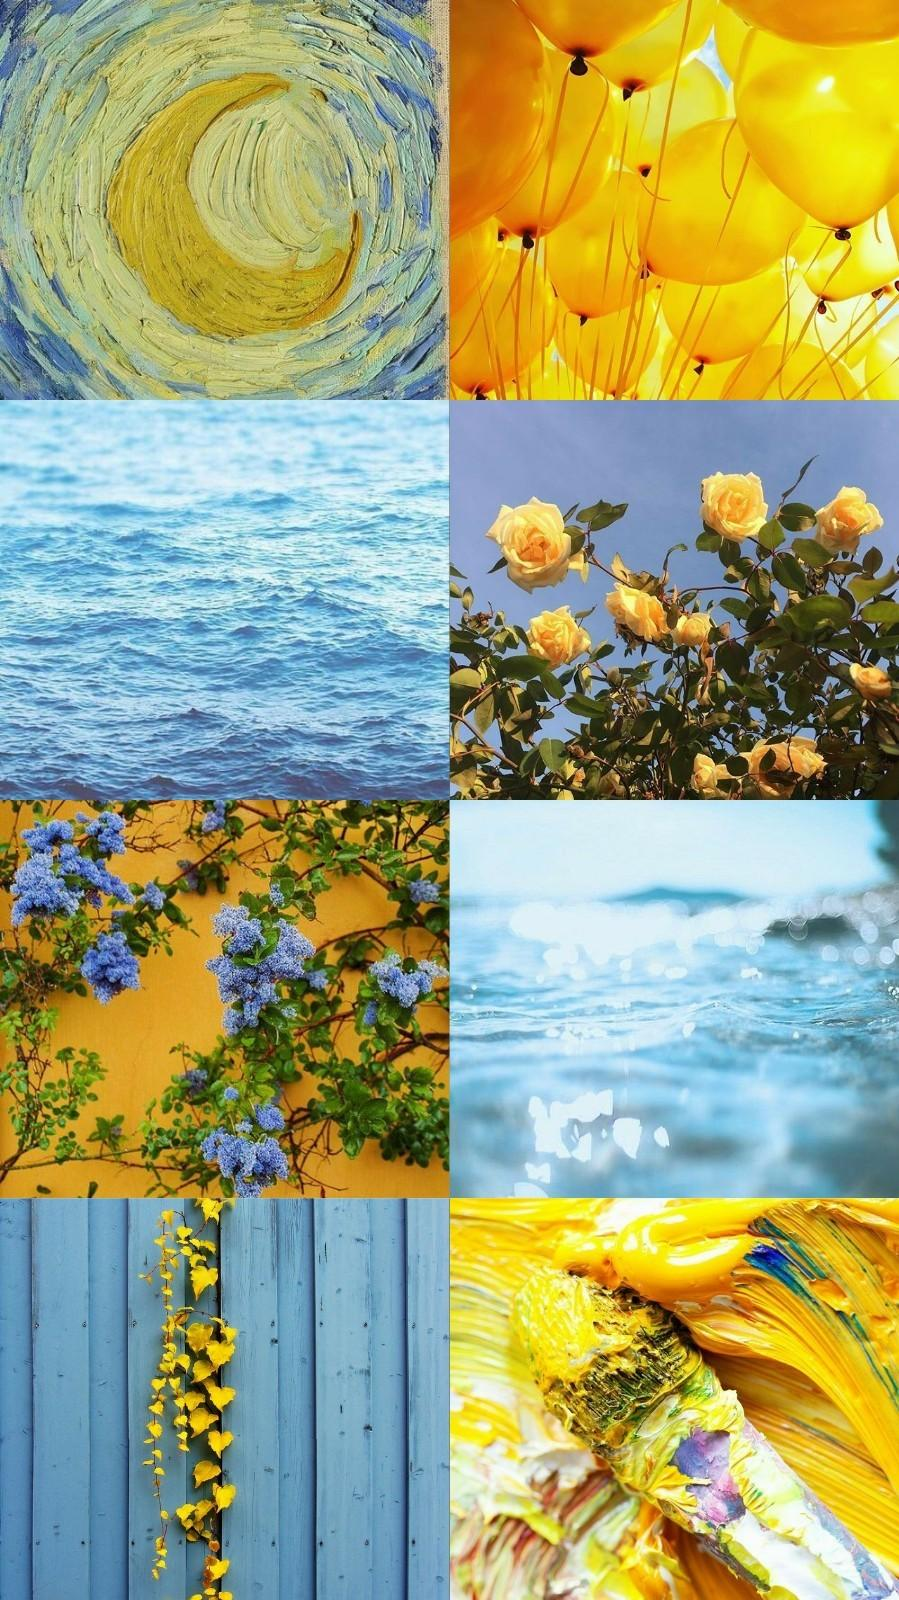 Blue And Yellow Aesthetic Wallpapers Wallpaper Cave